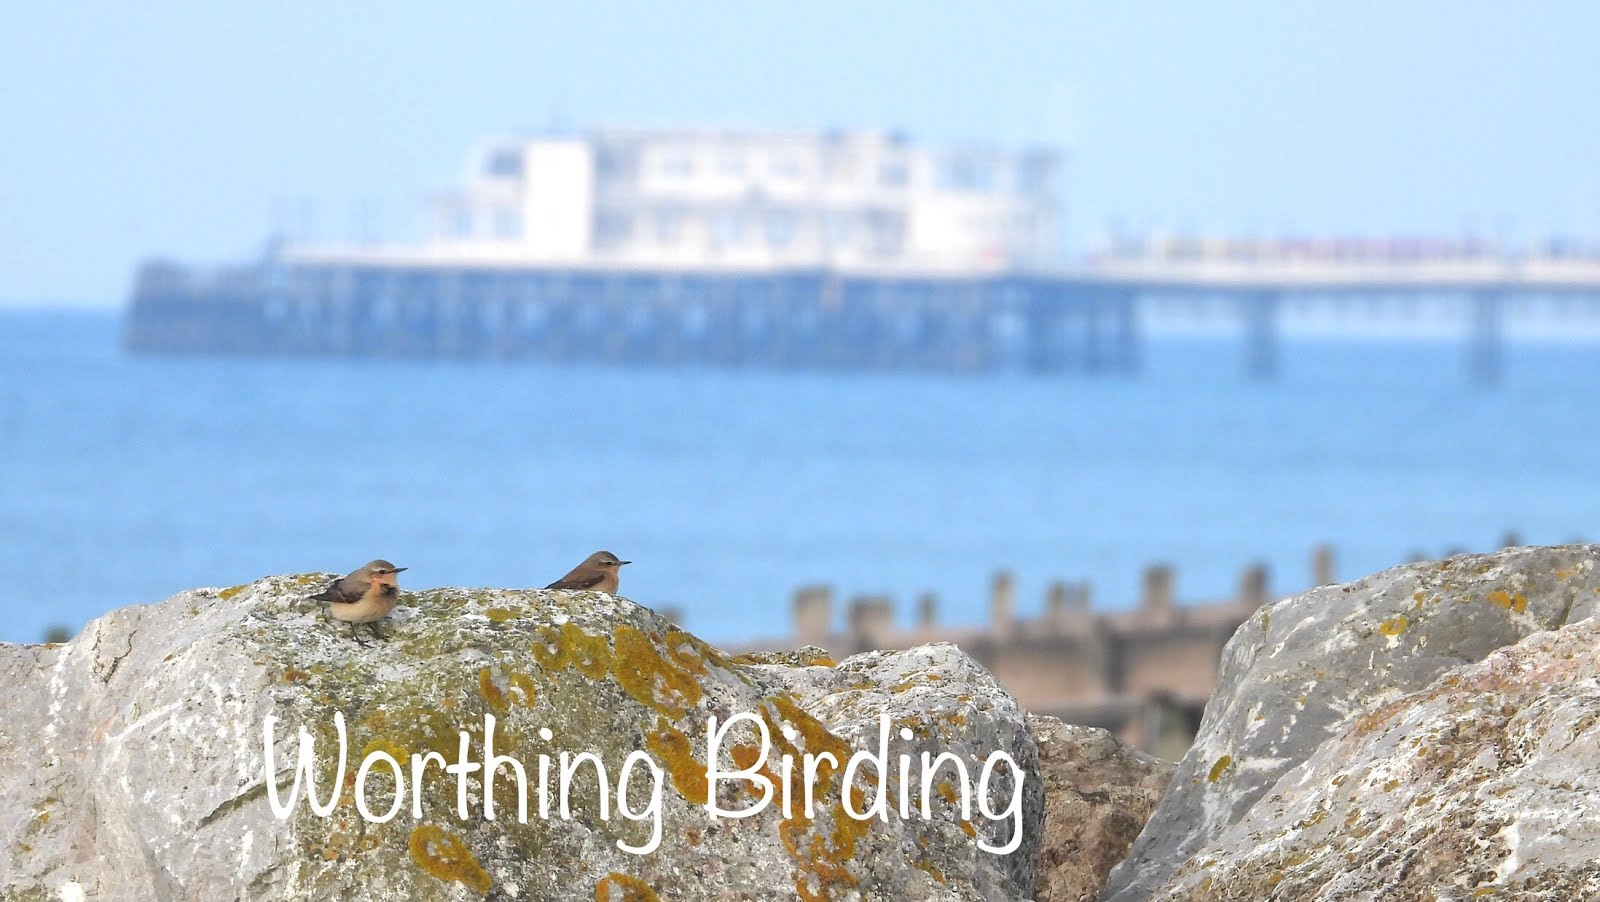 Worthing Birding and Wildlife